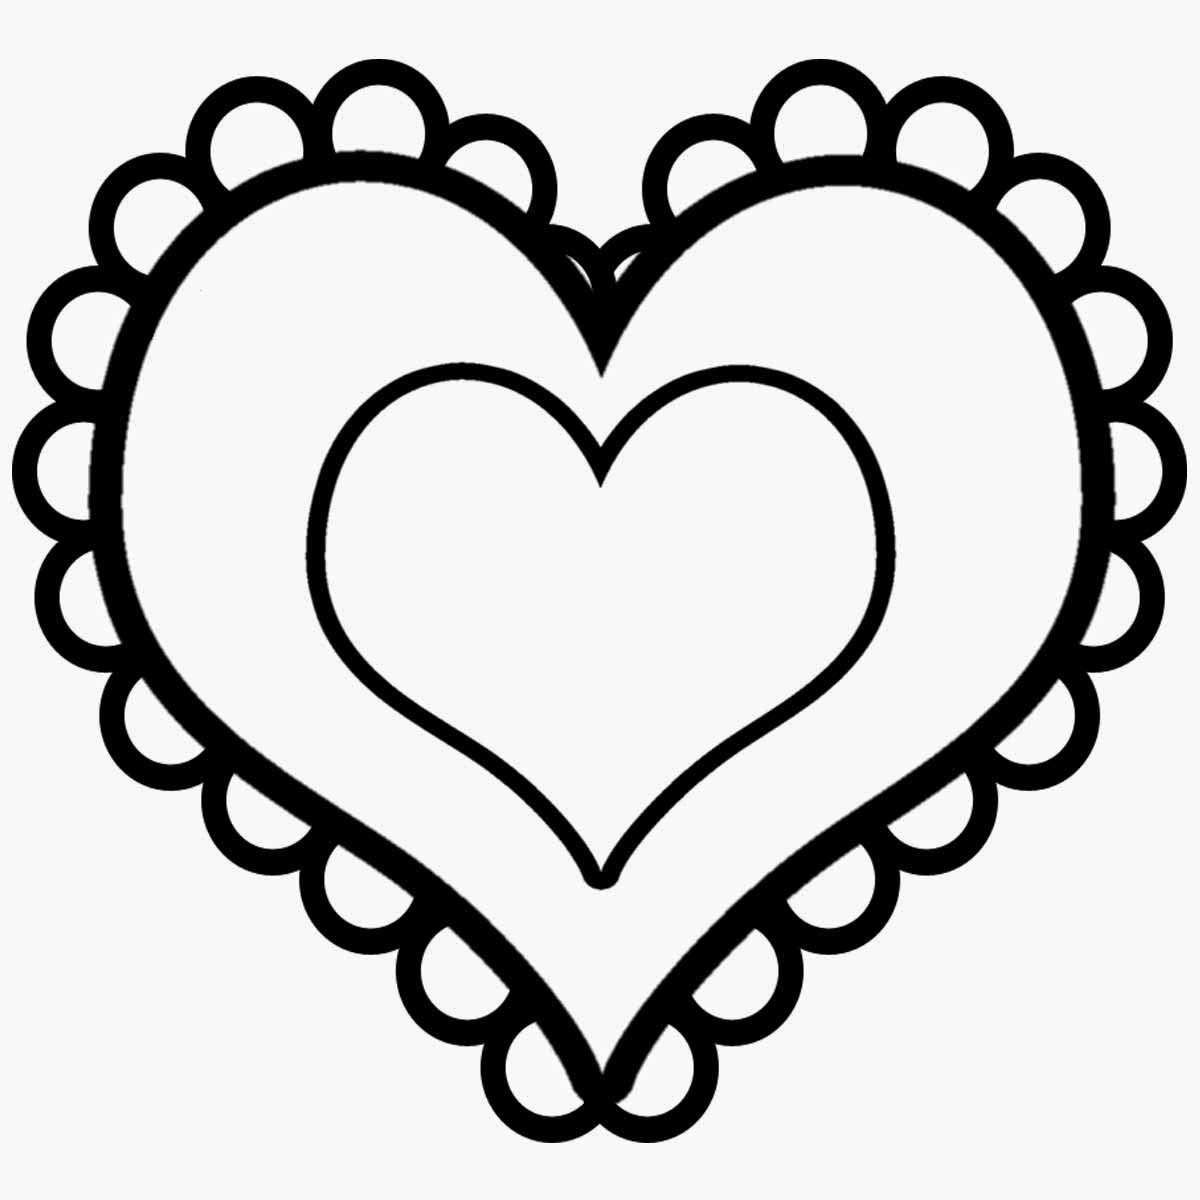 coloring hearts 35 free printable heart coloring pages coloring hearts